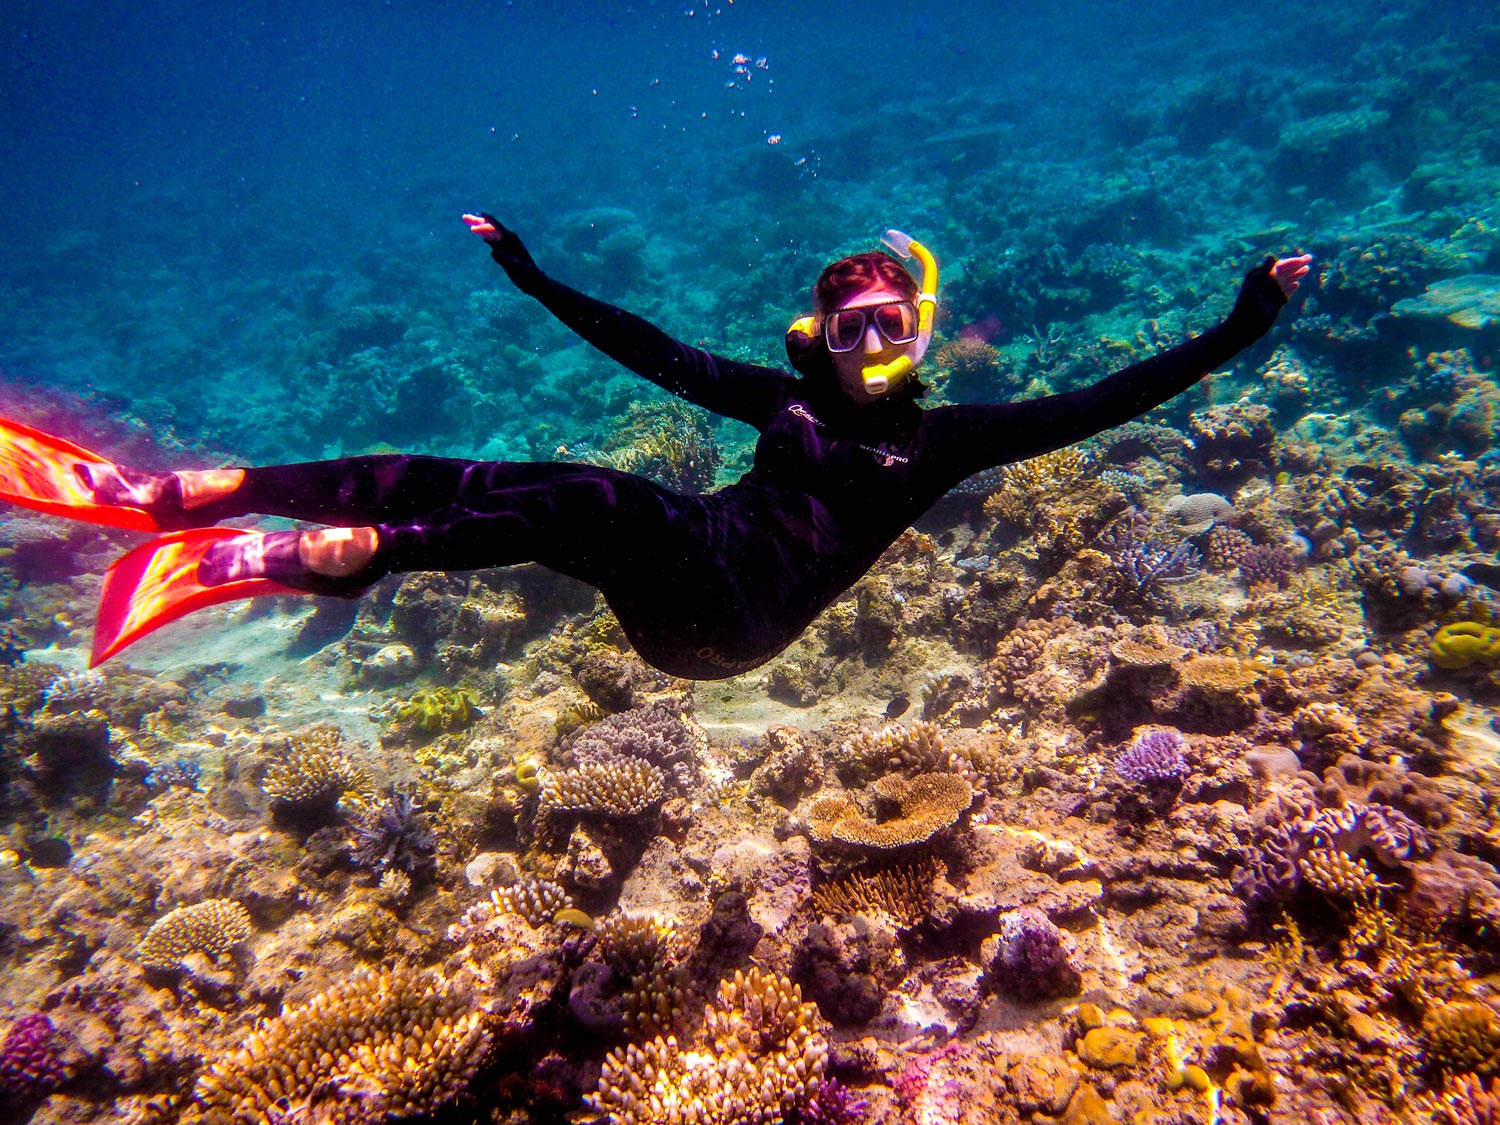 Snorkling – Great Barrier Reef, Australia